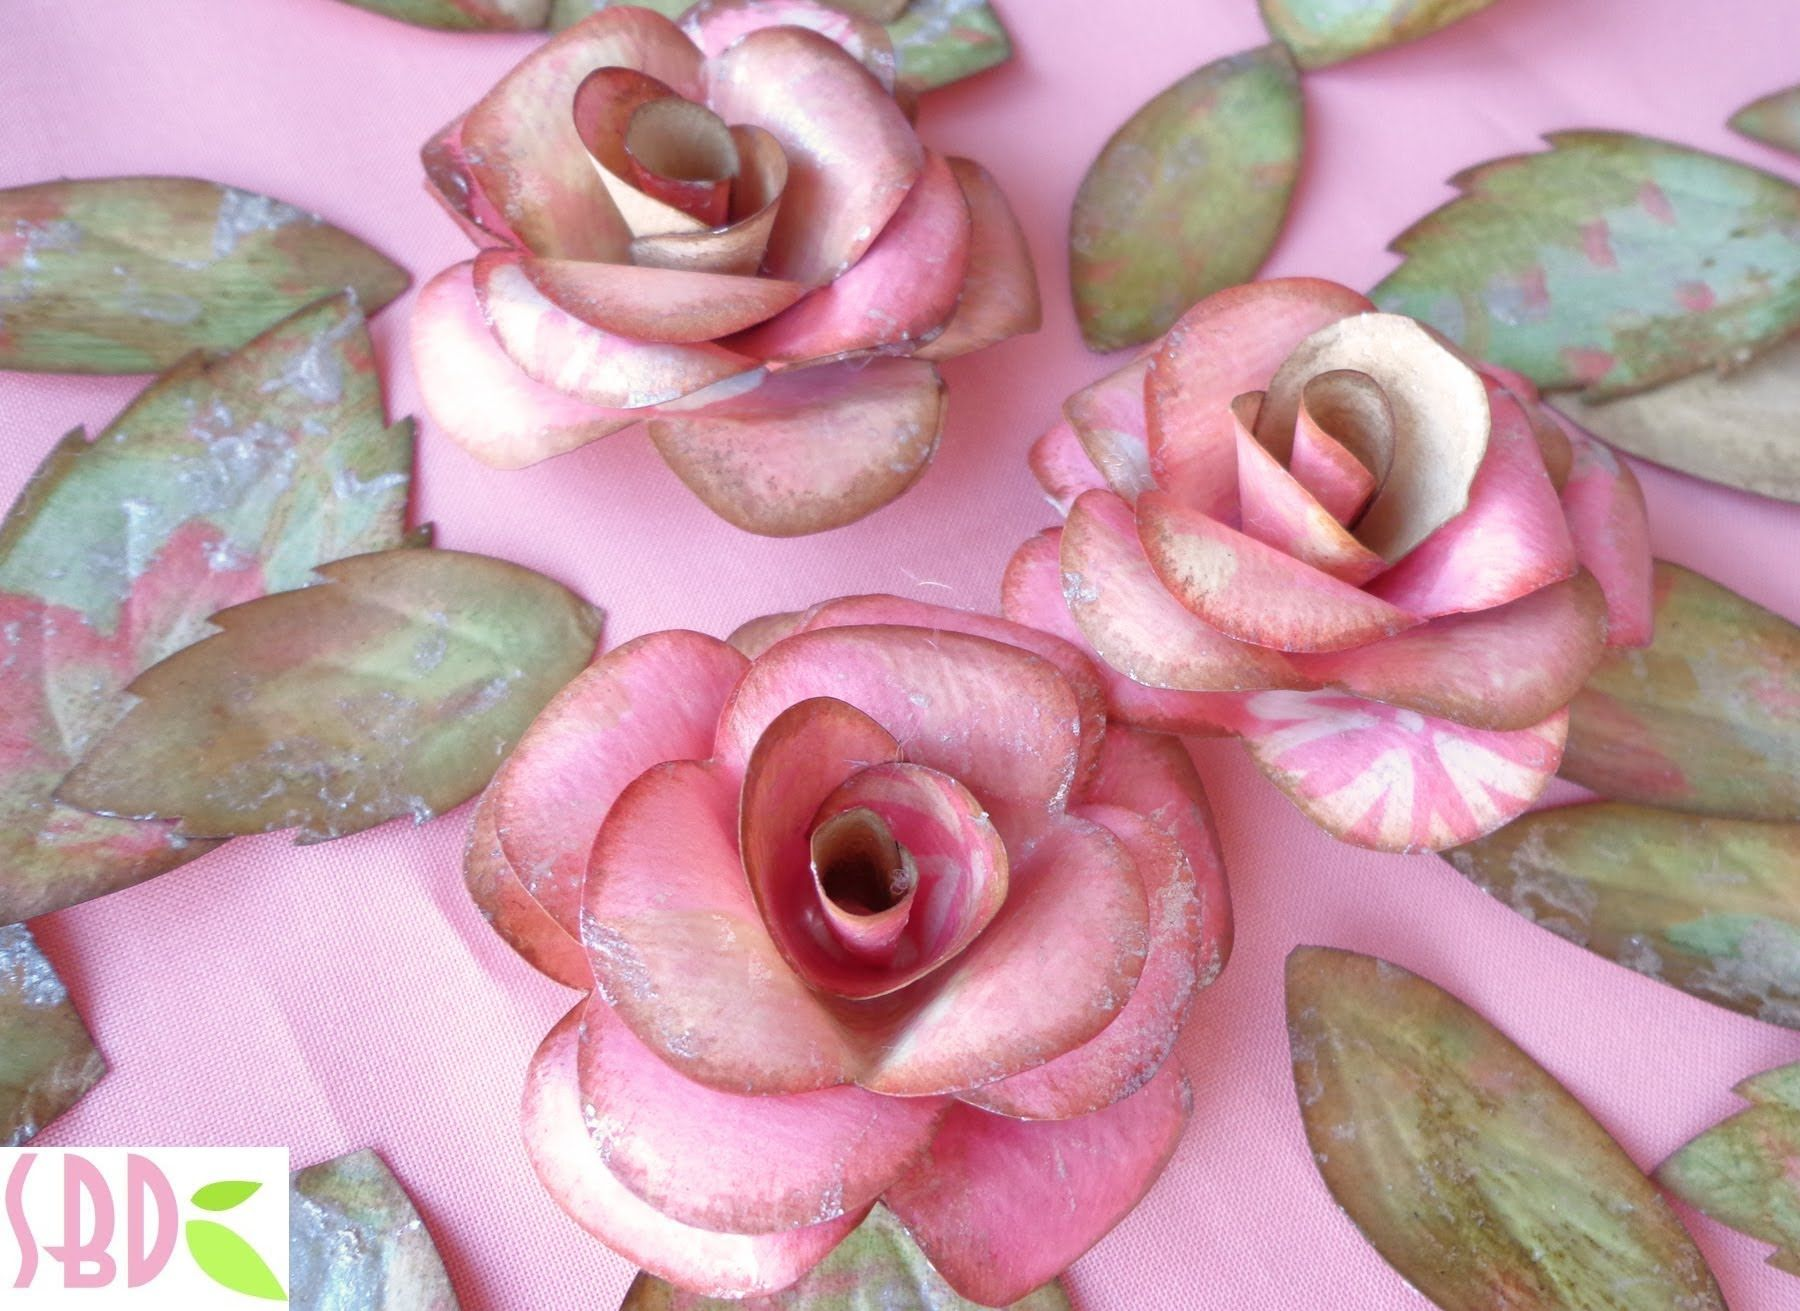 Rose E Farfalle Di Carta Paper Roses And Butterflies Eng Subs